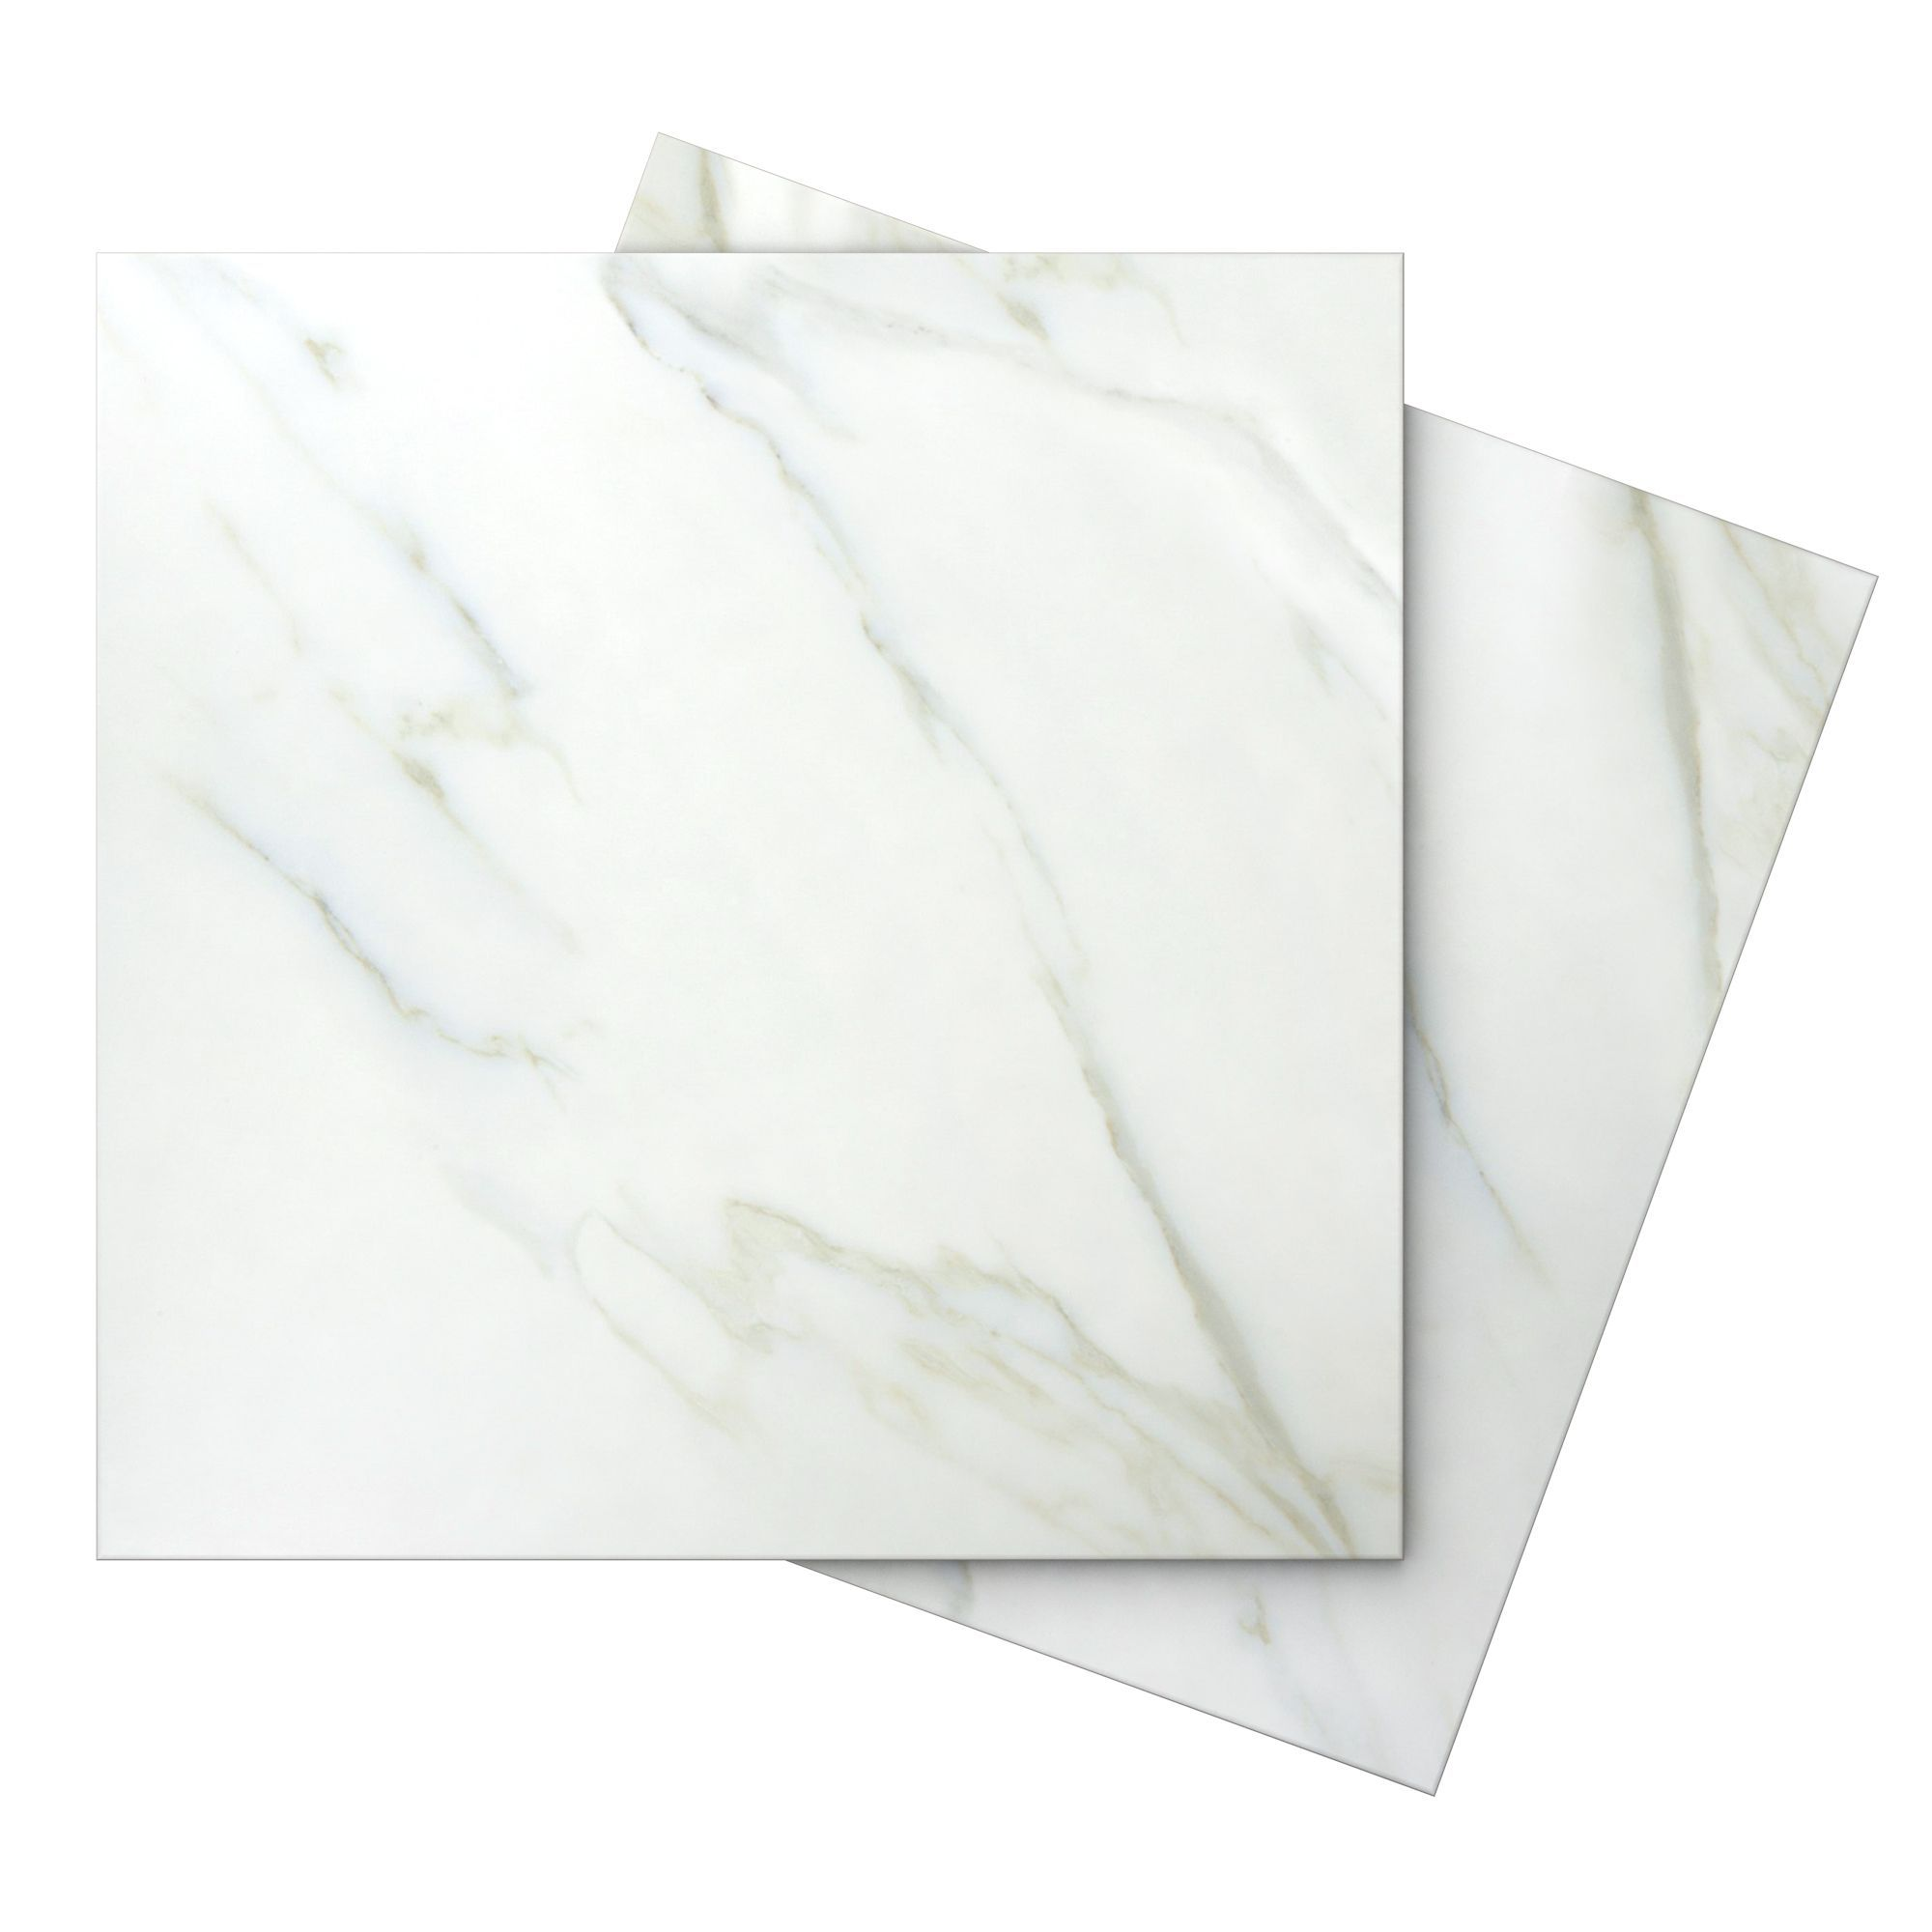 Aquila white stone effect carrara porcelain floor tile pack of 5 aquila white stone effect carrara porcelain floor tile pack of 5 l450mm w450mm departments diy at bq dailygadgetfo Image collections